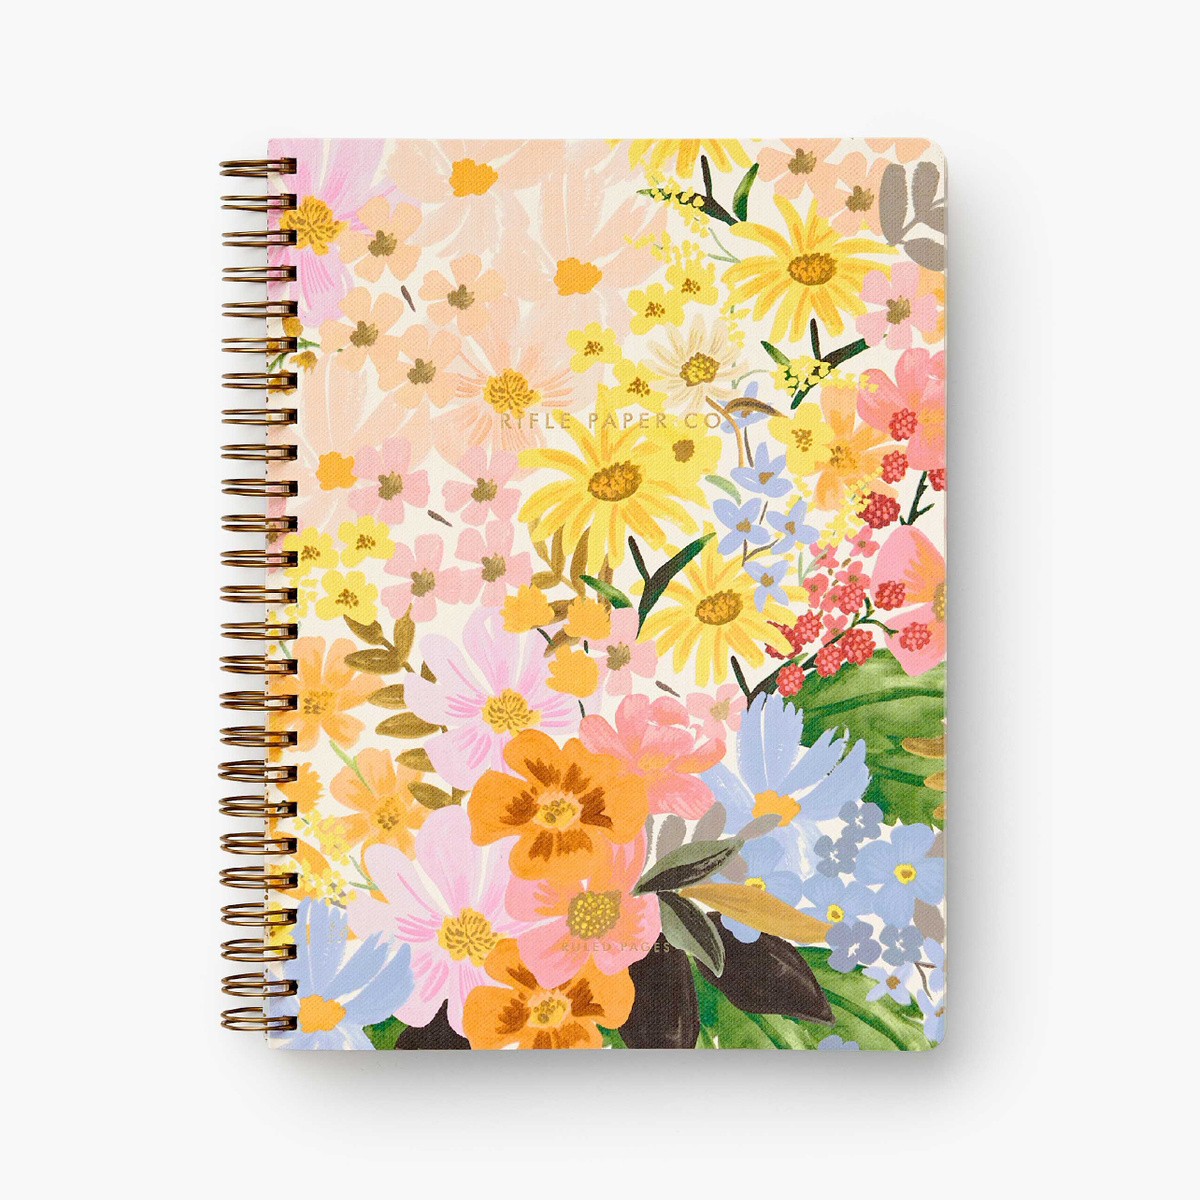 Rifle Paper Co - RP Rifle Paper Co - Marguerite Spiral Lined Notebook